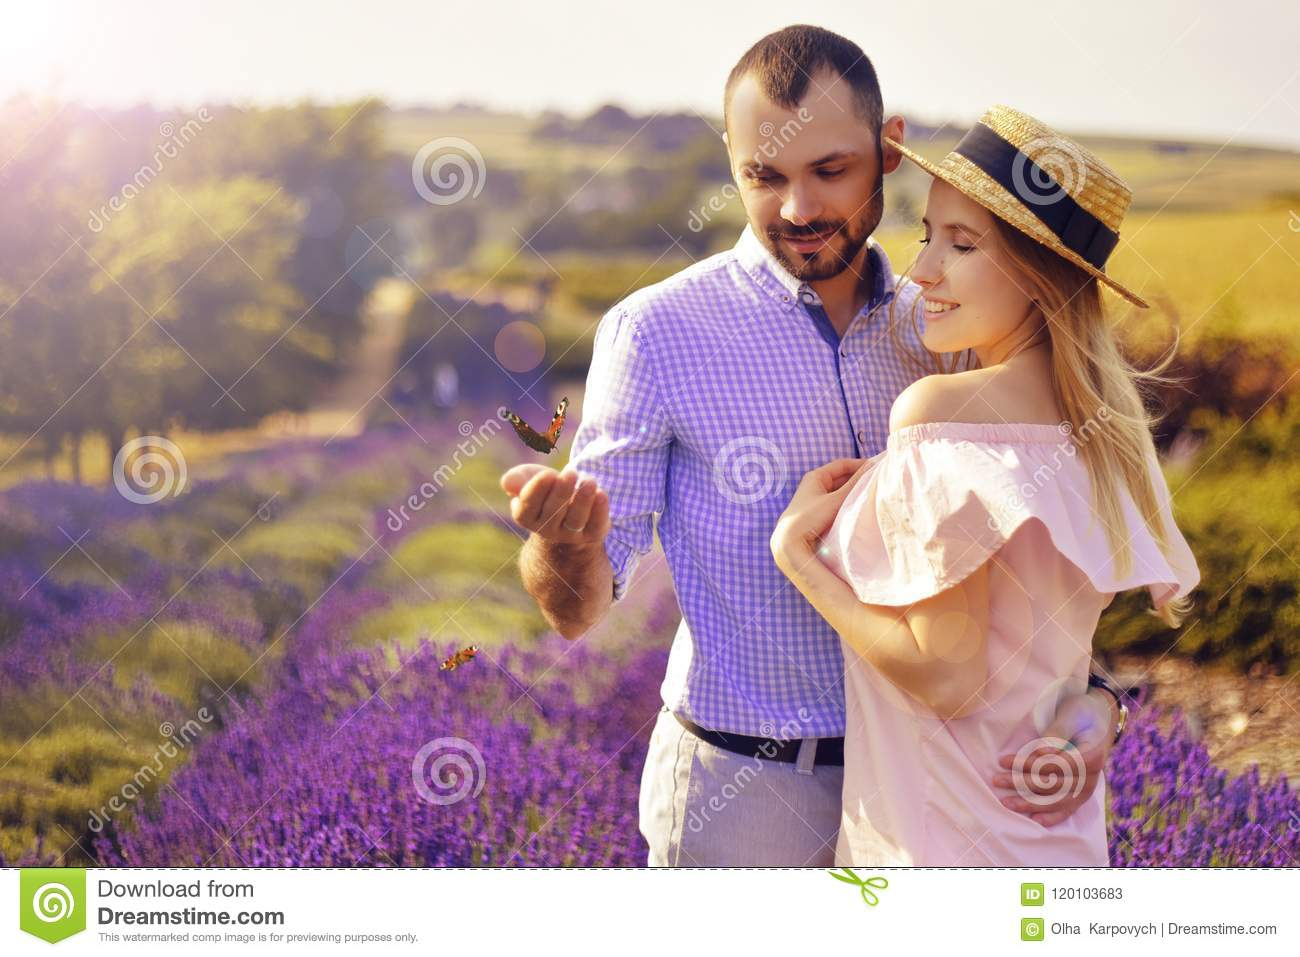 Cute young happy couple in love in a field of lavender flowers. Enjoy a moment of happiness and love in a lavender field.